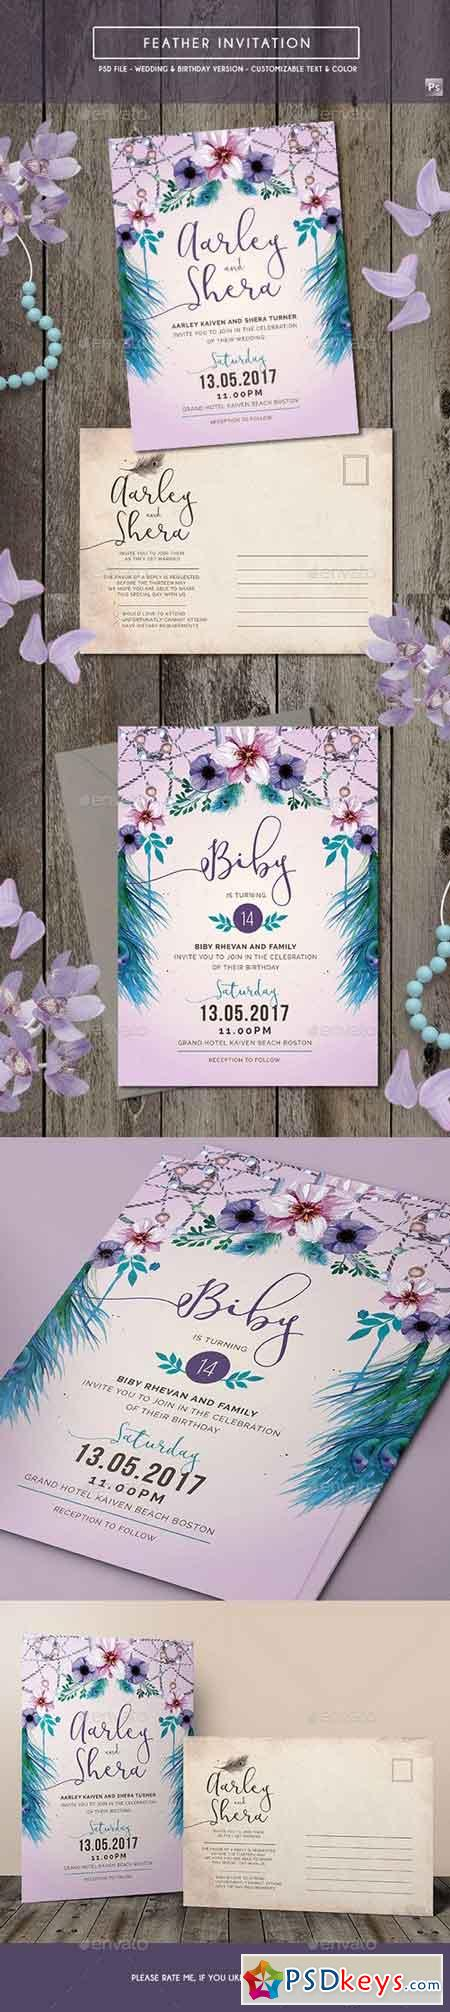 Feather Invitation (Wedding & Birthday) 17787089